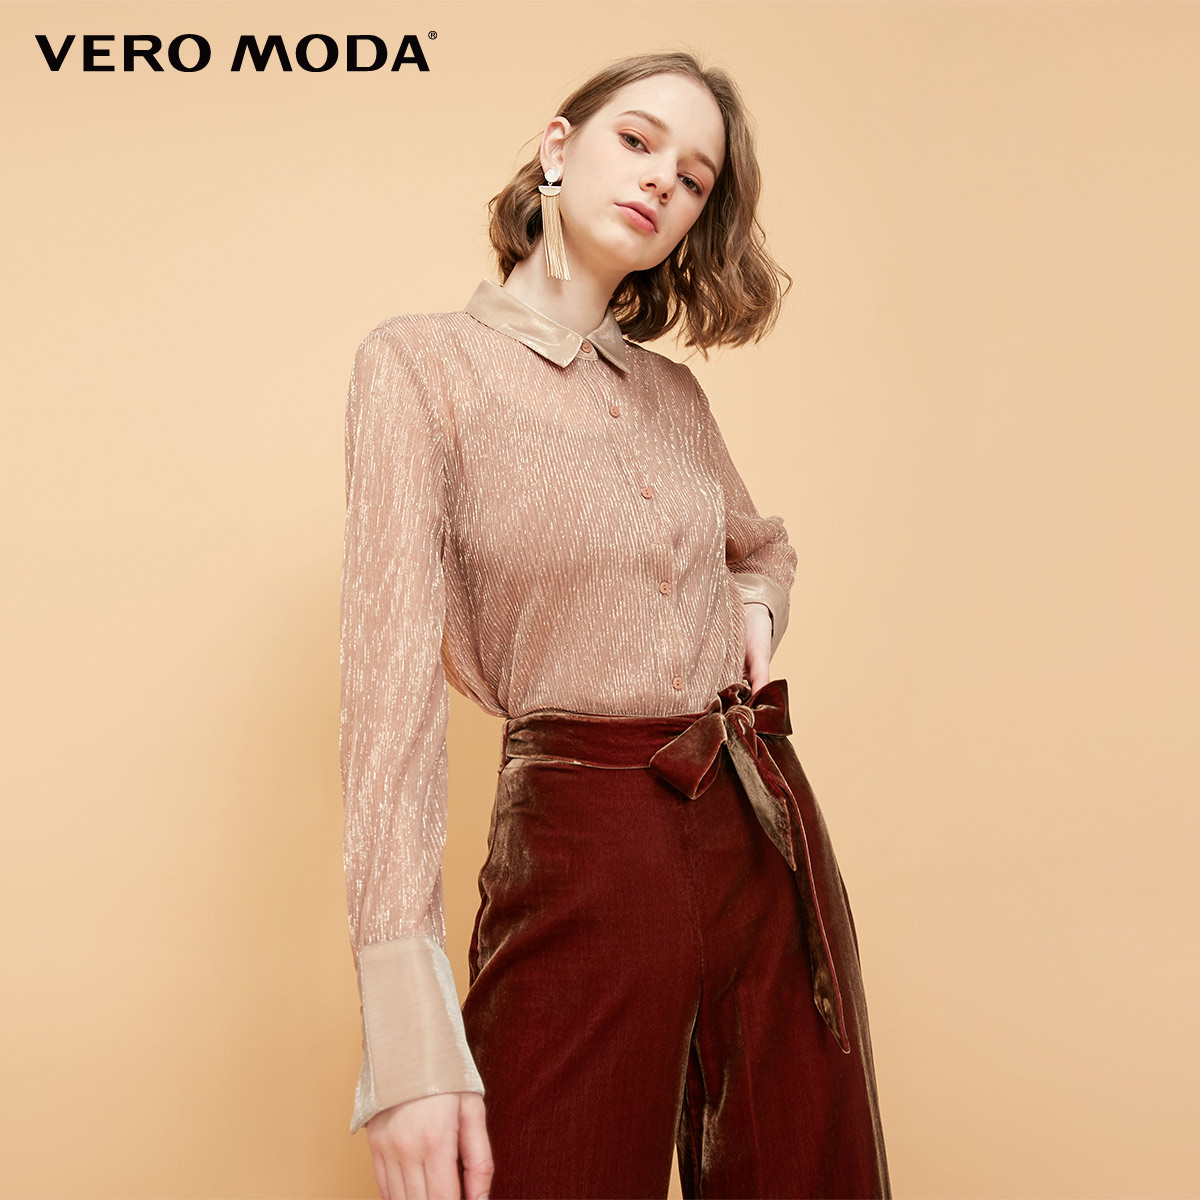 Vero Moda New Women's Golden Stitch Blending Glossy Sun-top Lining See-through Shirt | 319105510